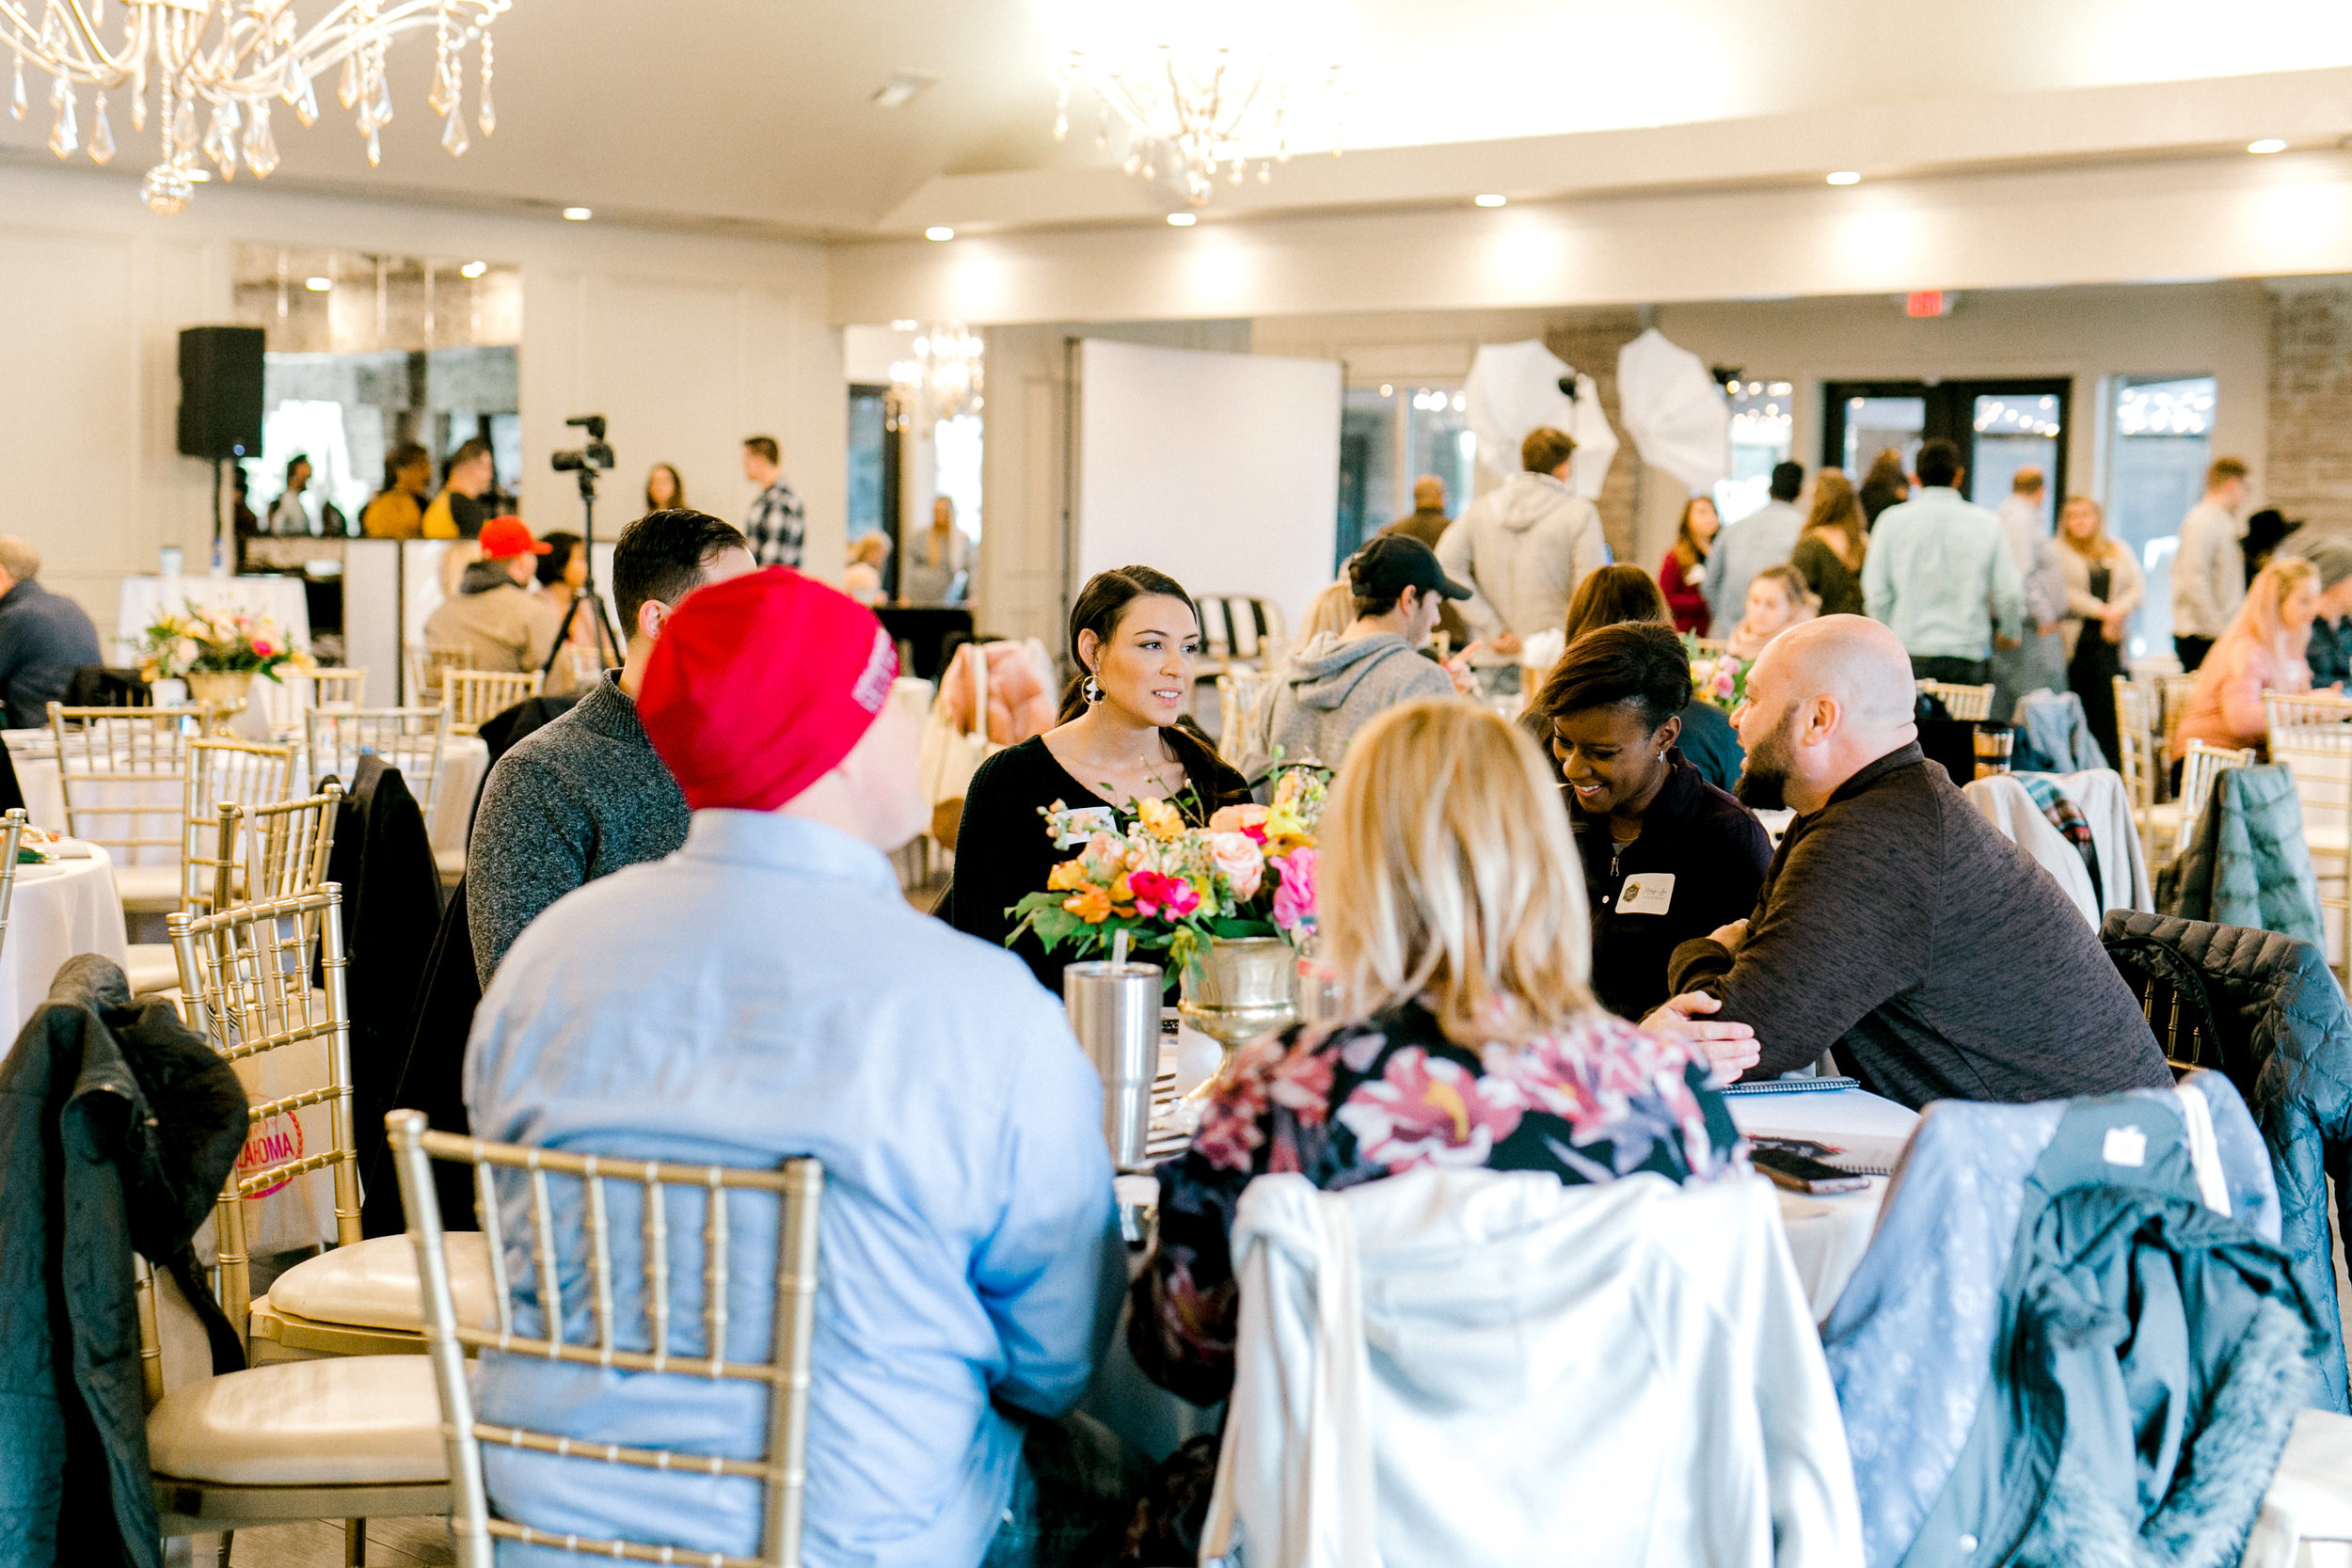 The-Engaged-Event-March-2019-emily-nicole-photo-120.jpg